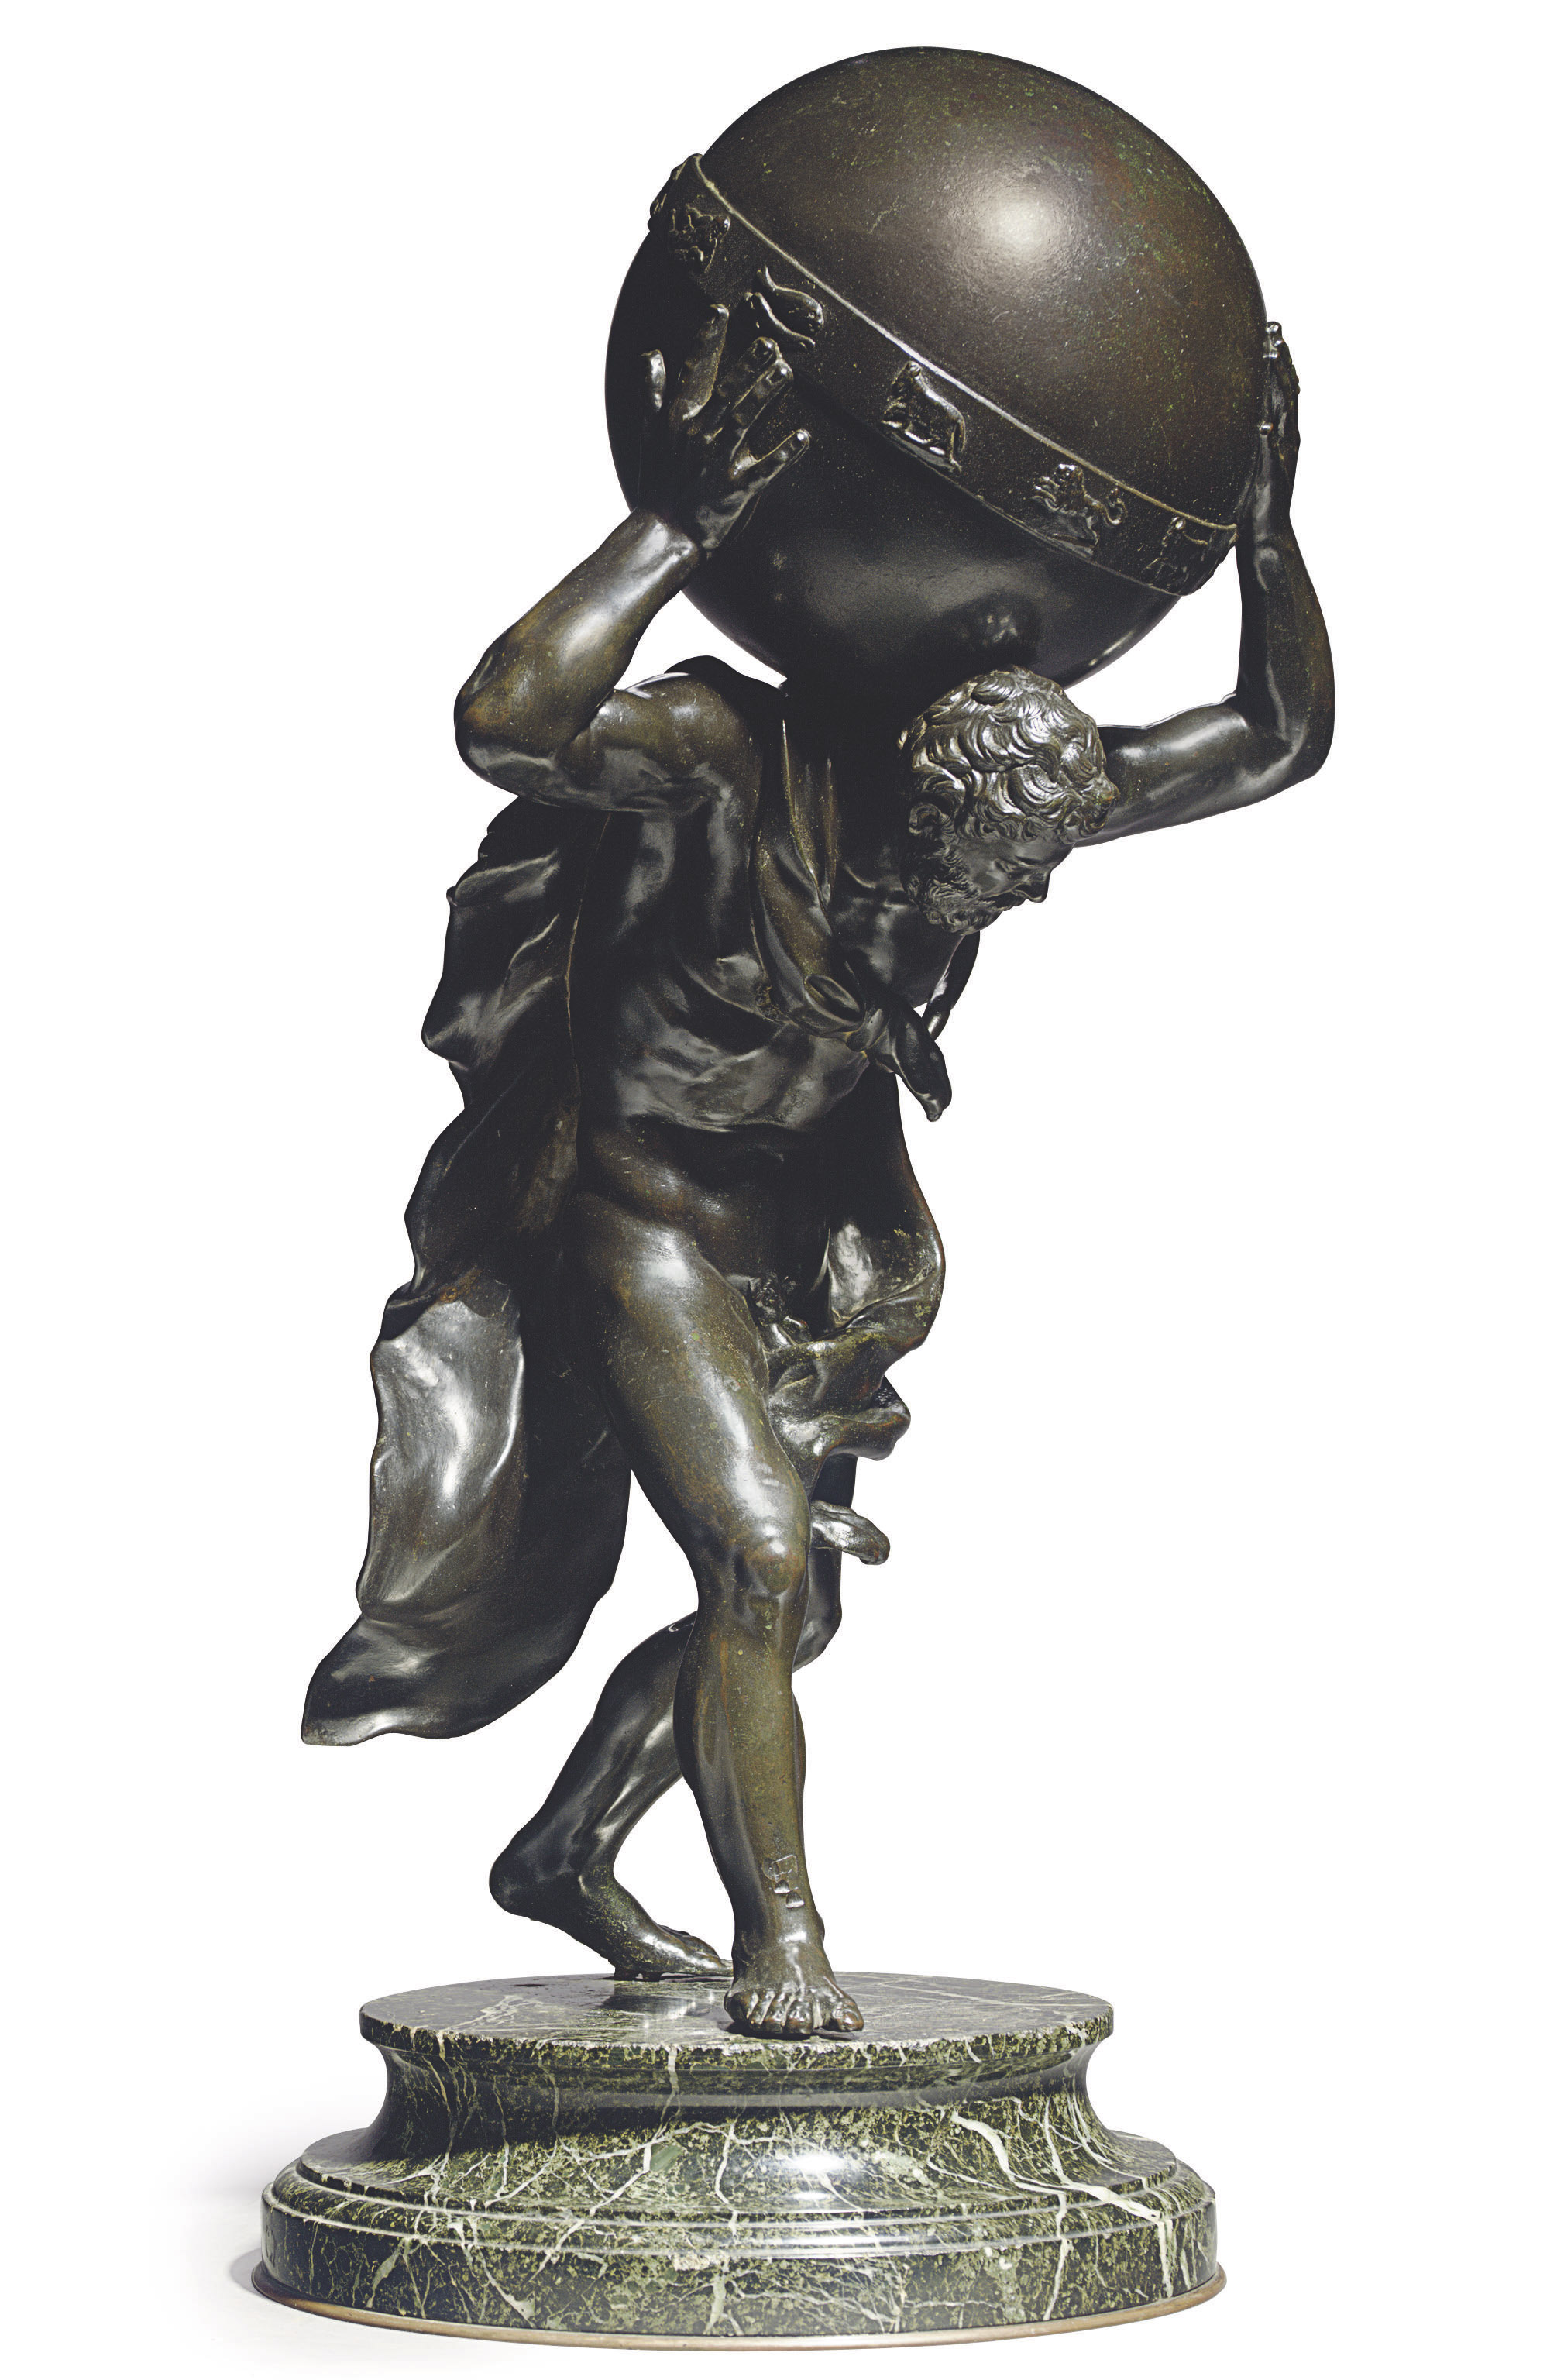 A BRONZE FIGURE OF HERCULES SUPPORTING THE CELESTIAL GLOBE